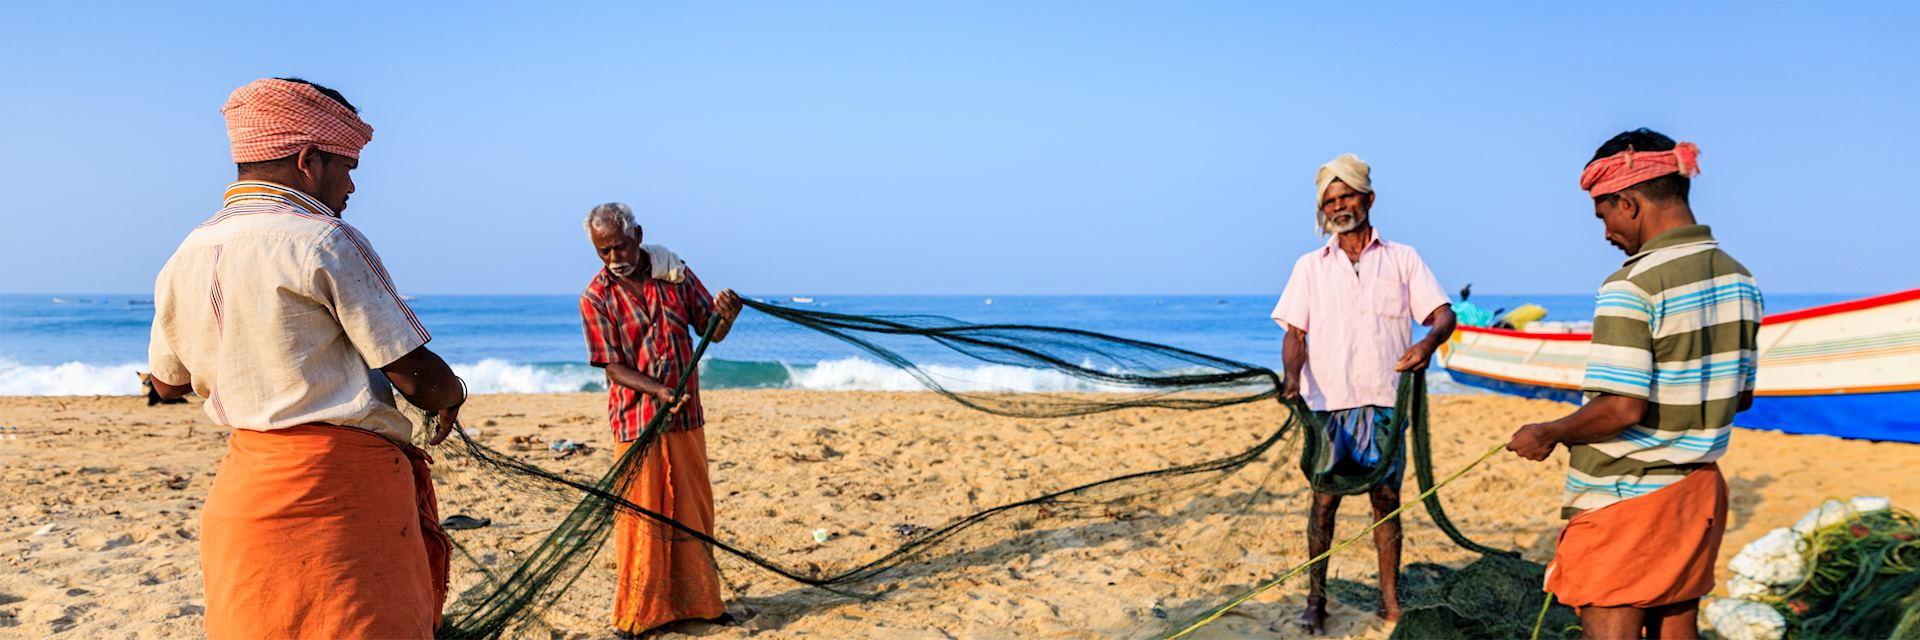 Fishermen on a Kerala beach